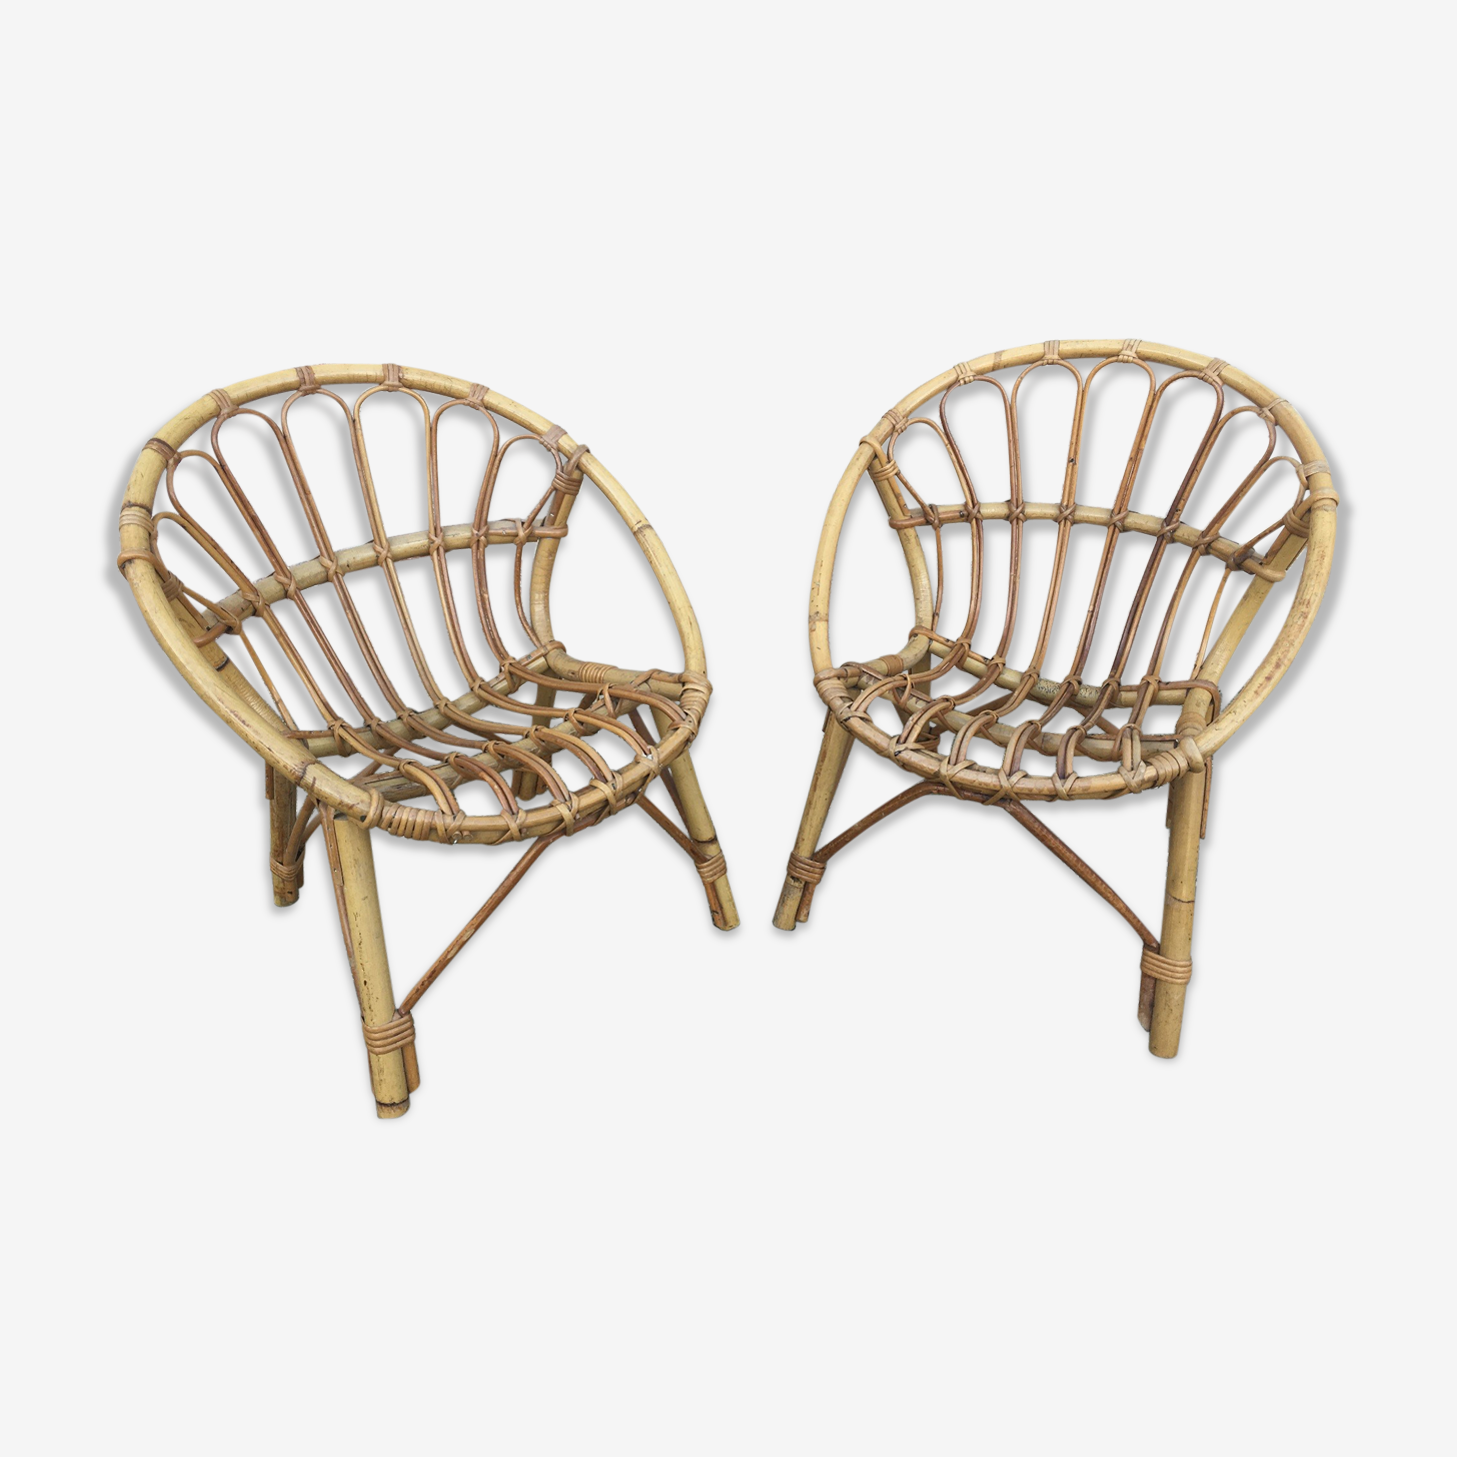 Duo of rattan armchairs